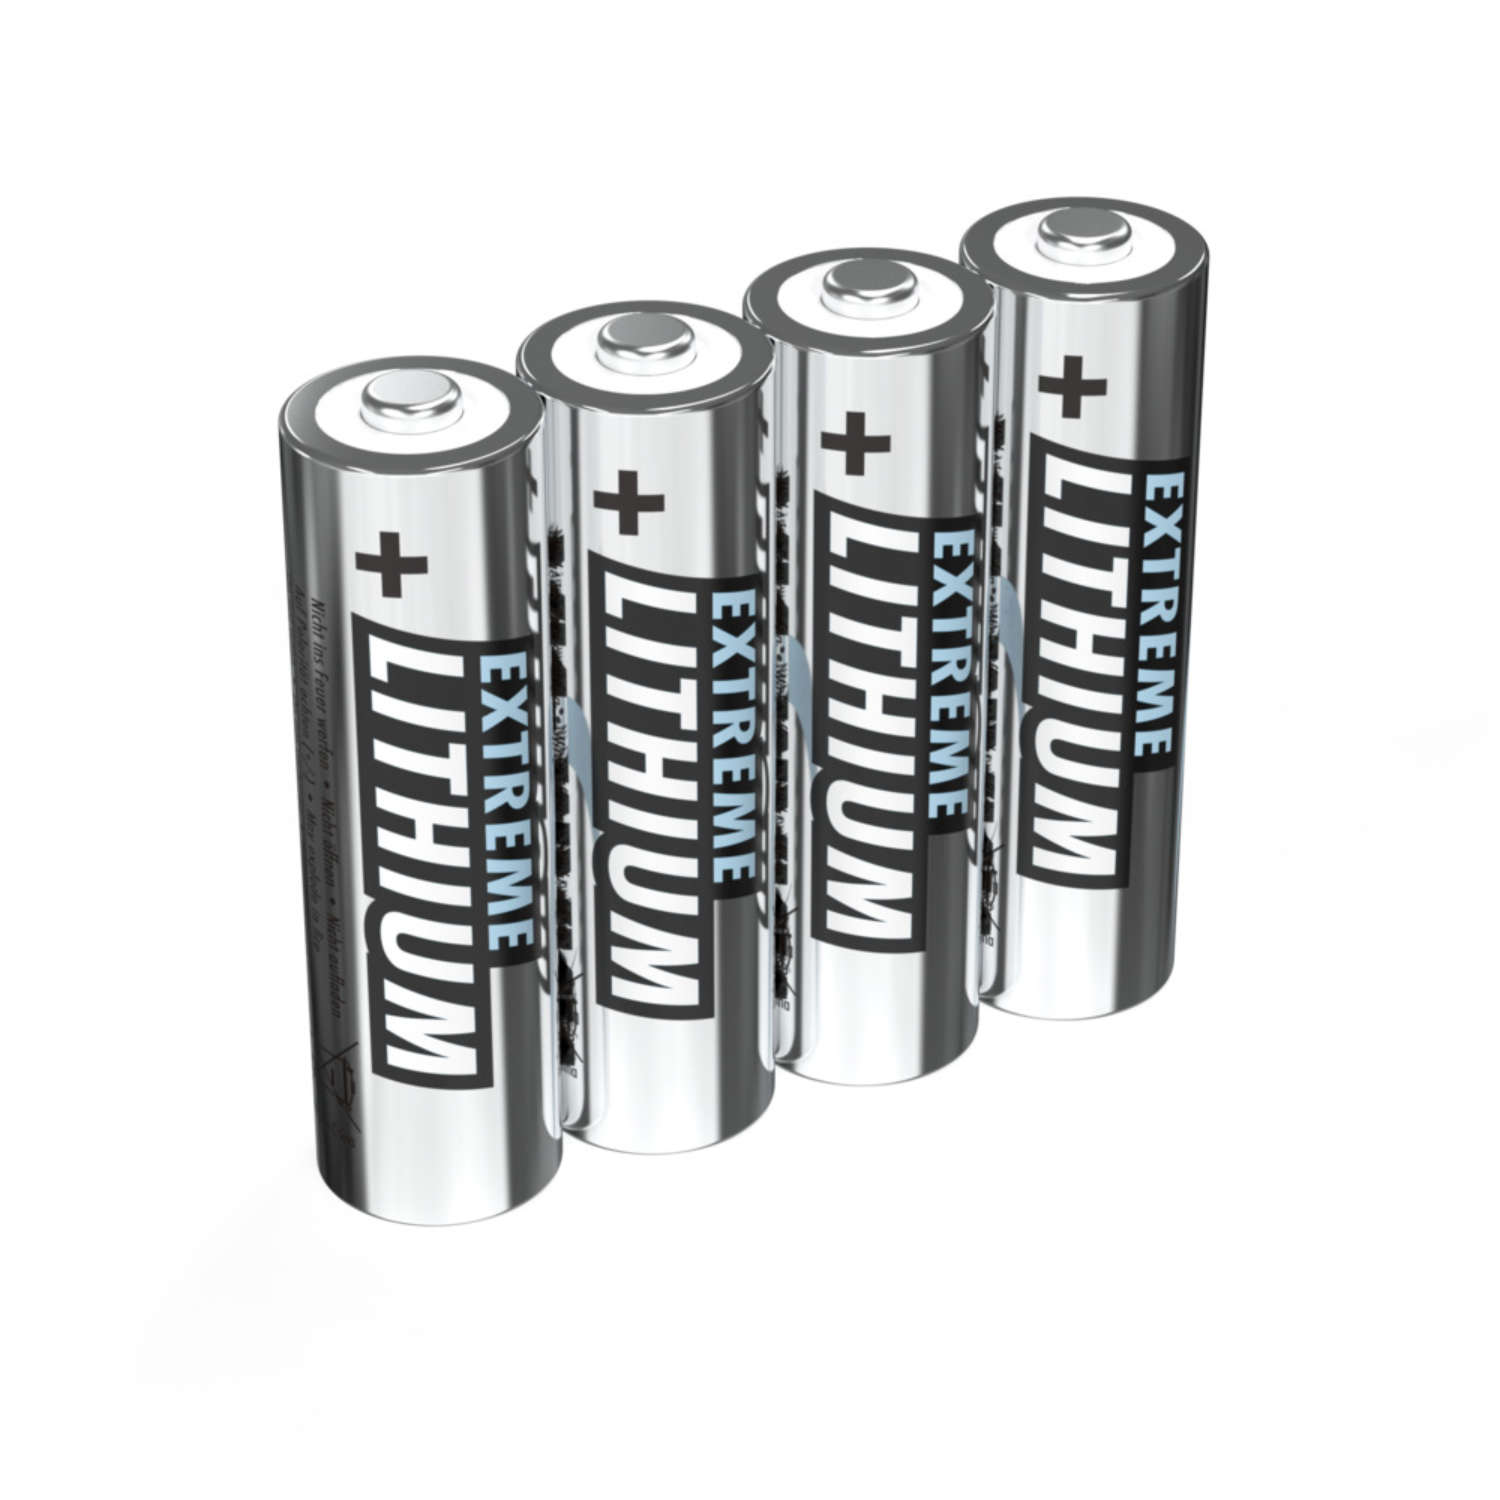 Lithium Battery AA / FR6 4 pcs. blister packaging